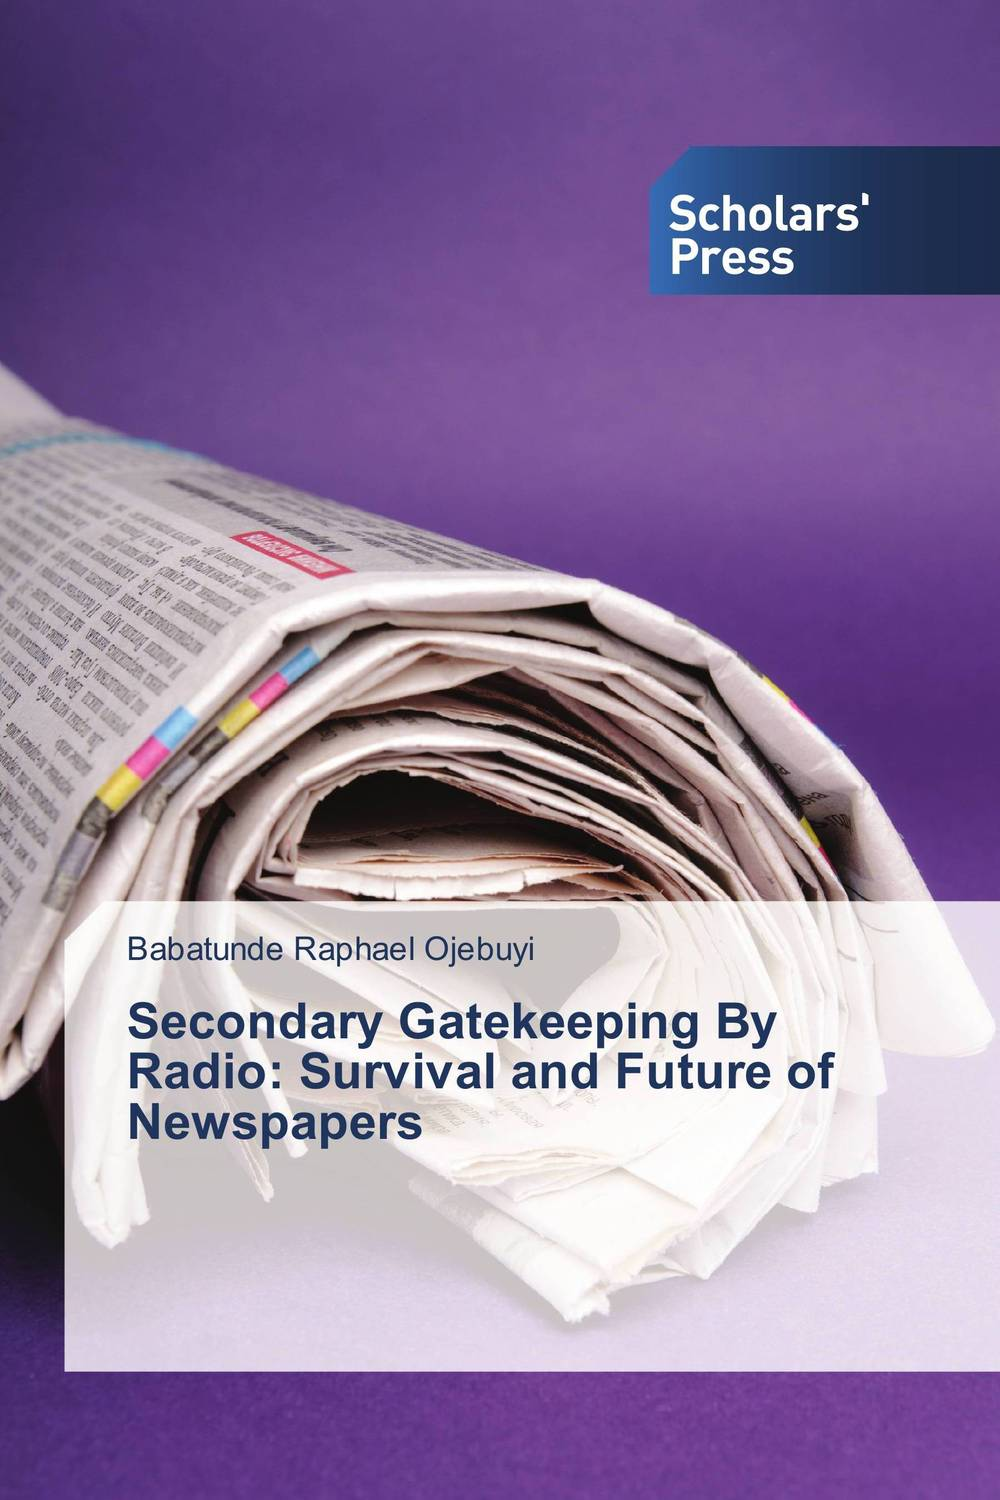 Secondary Gatekeeping By Radio: Survival and Future of Newspapers secondary gatekeeping by radio survival and future of newspapers